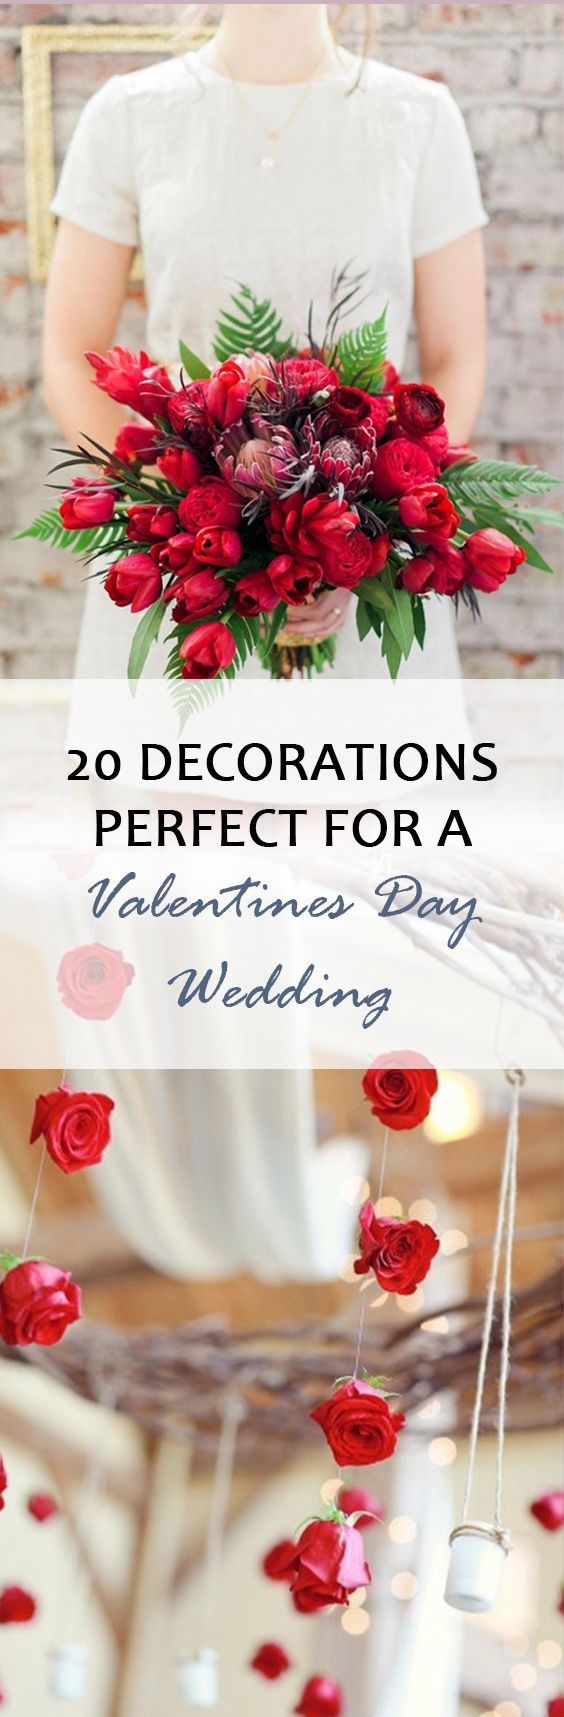 Valentines day valentines day wedding wedding decor wedding decor